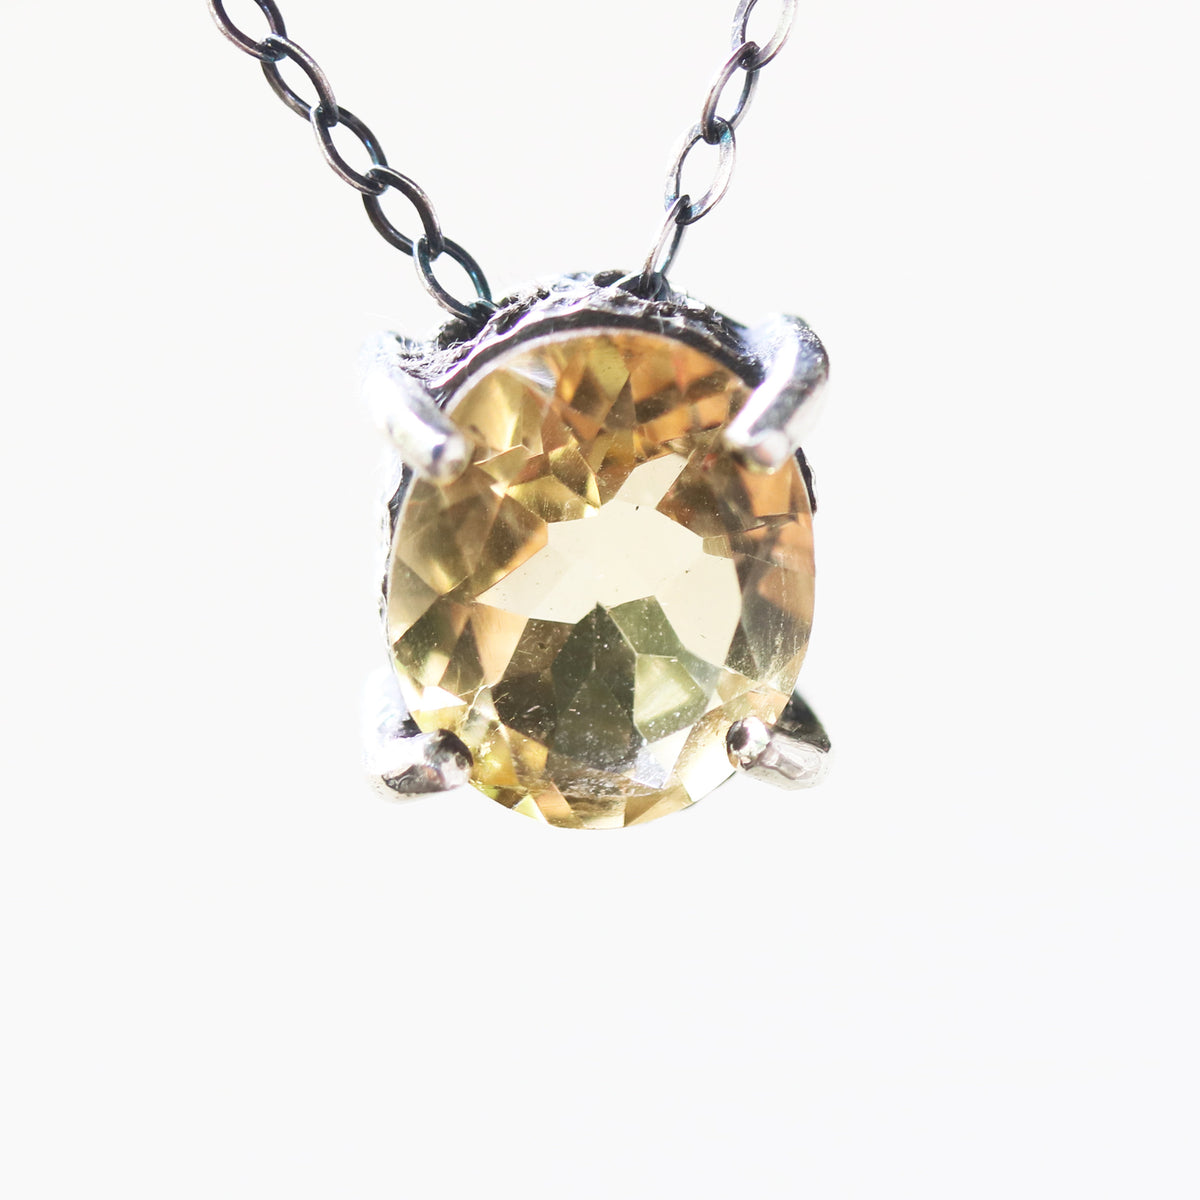 Oval faceted Citrine pendant necklace in silver bezel and prongs setting with yellow multi-sapphire beads secondary on oxidized silver chain